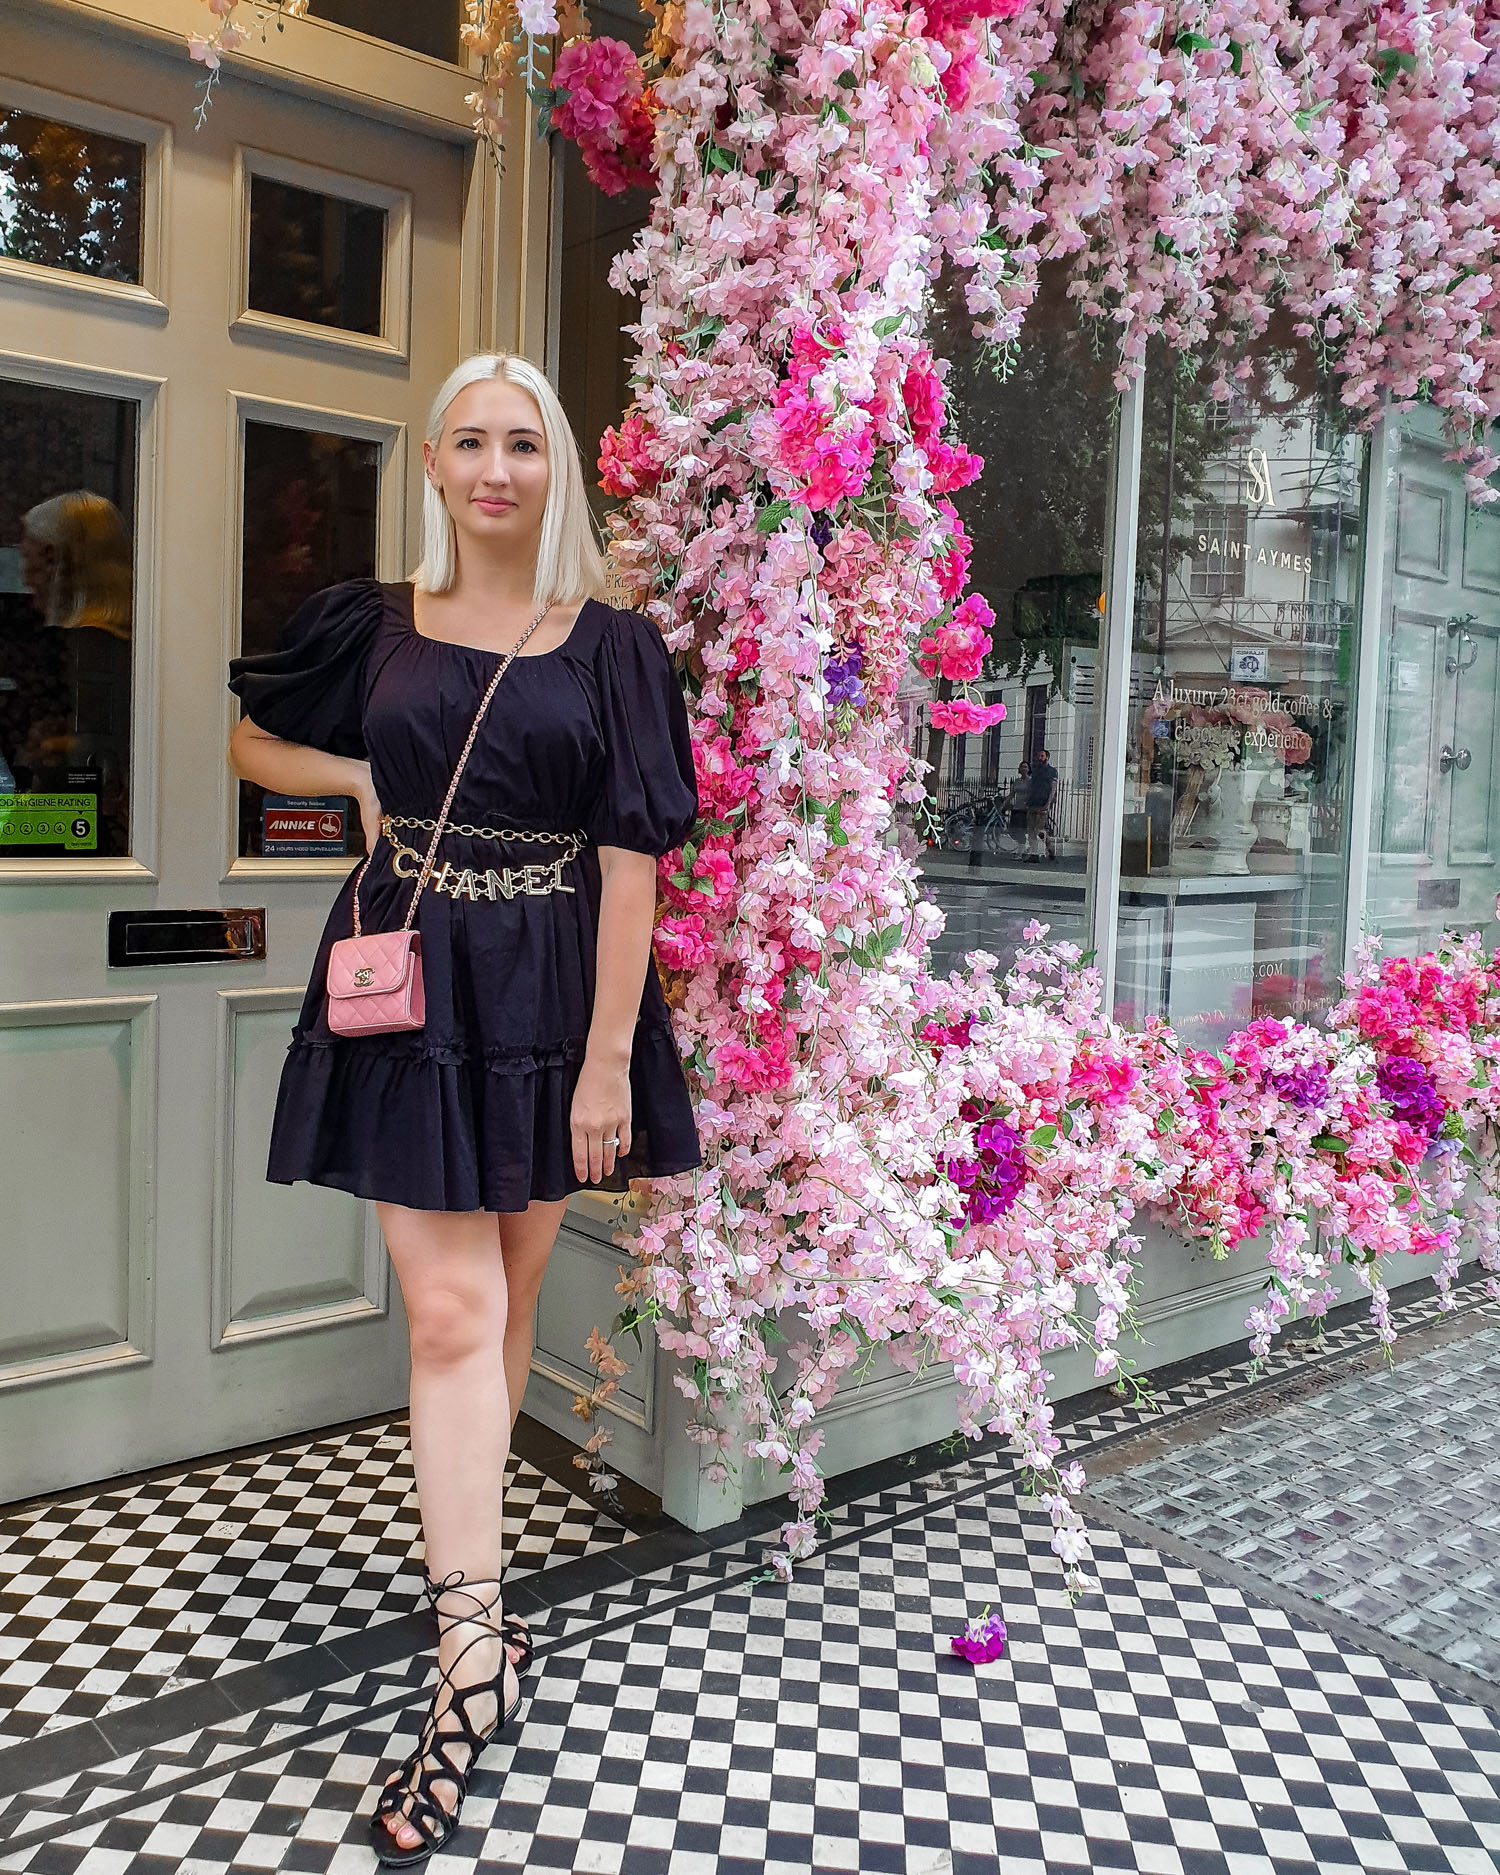 & Other Stories puff sleeve dress outfit | London Saint Aymes Cafe | pink Chanel bag and gladiator sandals